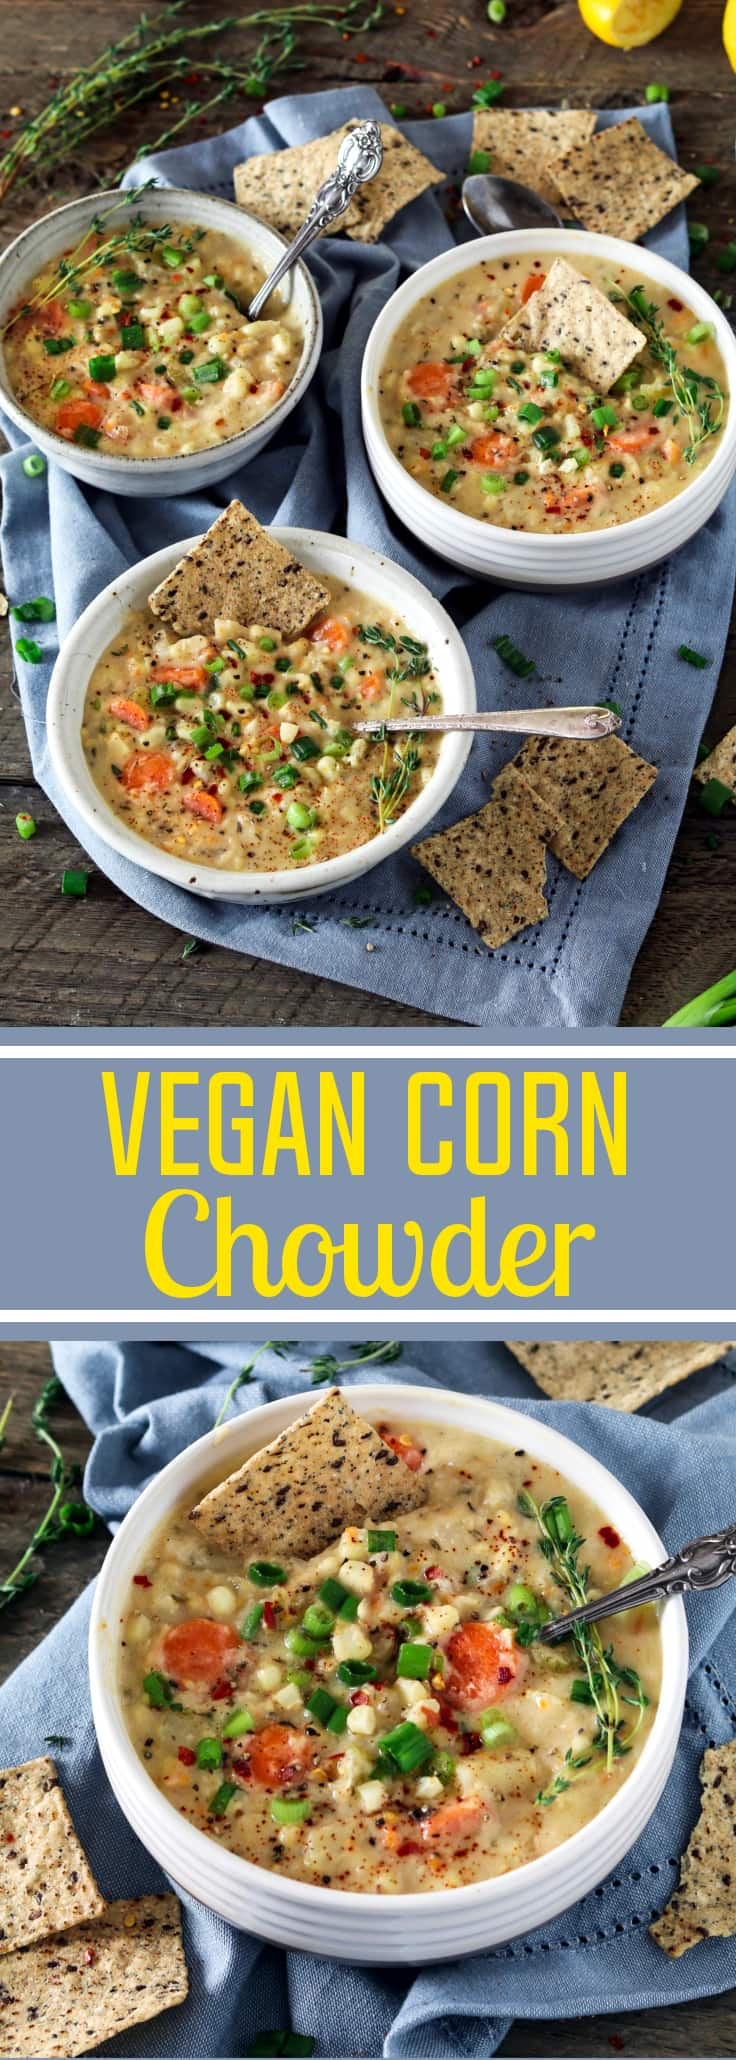 Vegan Corn Chowder ~ It's super creamy, flavor-packed & satisfying. You'll get a taste of fresh sweet corn in every bite!